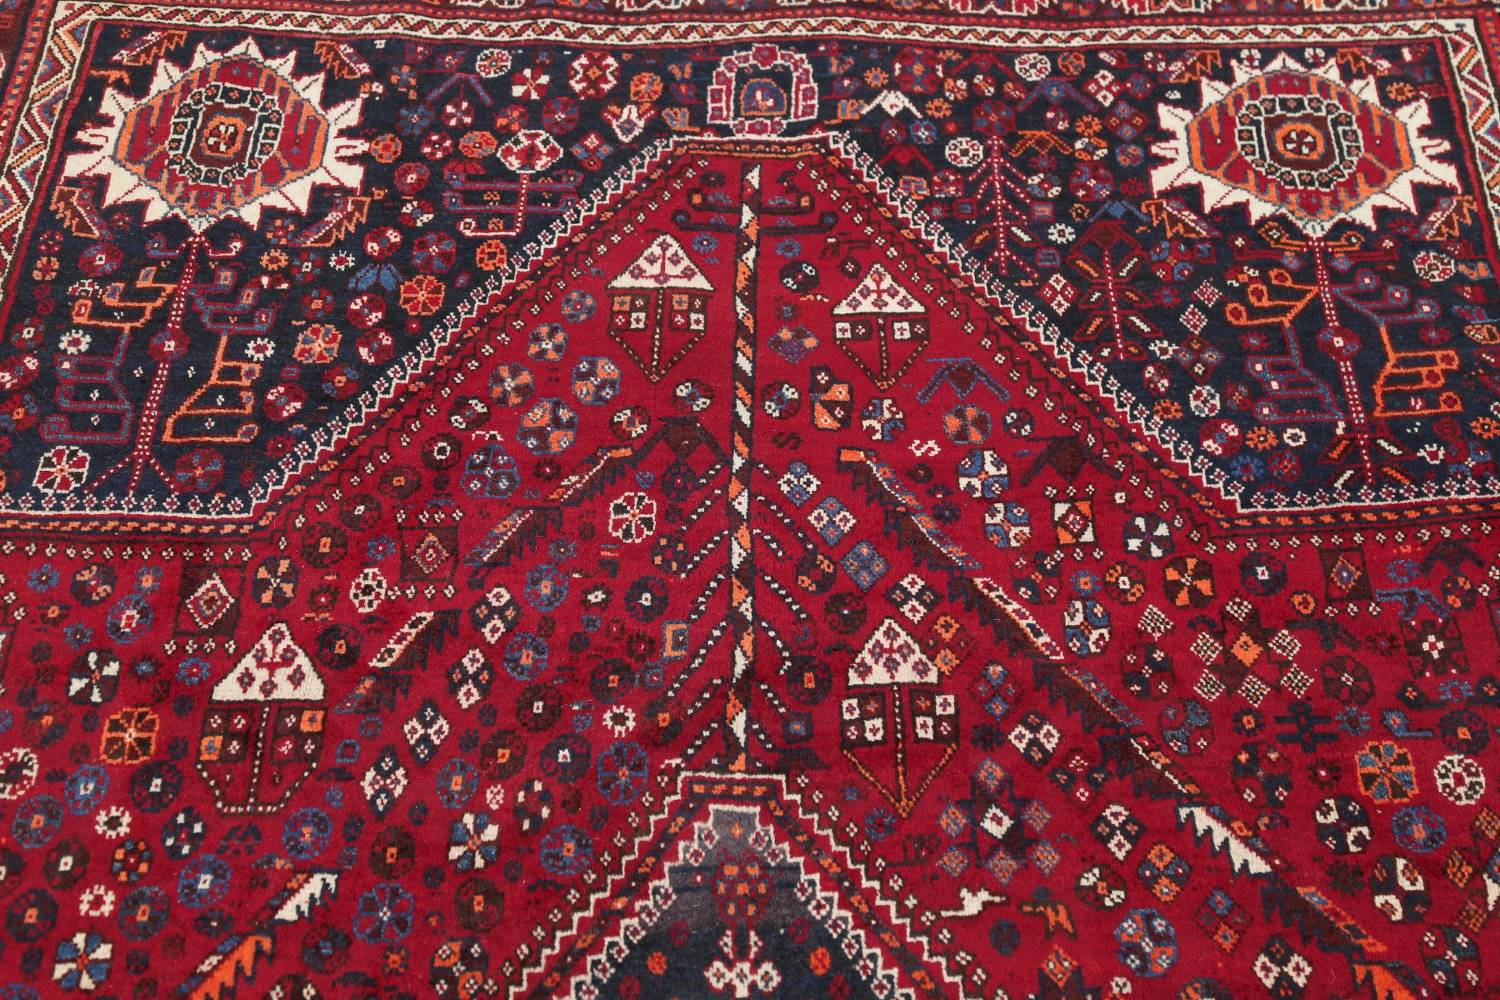 Antique Red Tribal Geometric Qashqai Persian Hand-Knotted 5x8 Wool Area Rug image 12